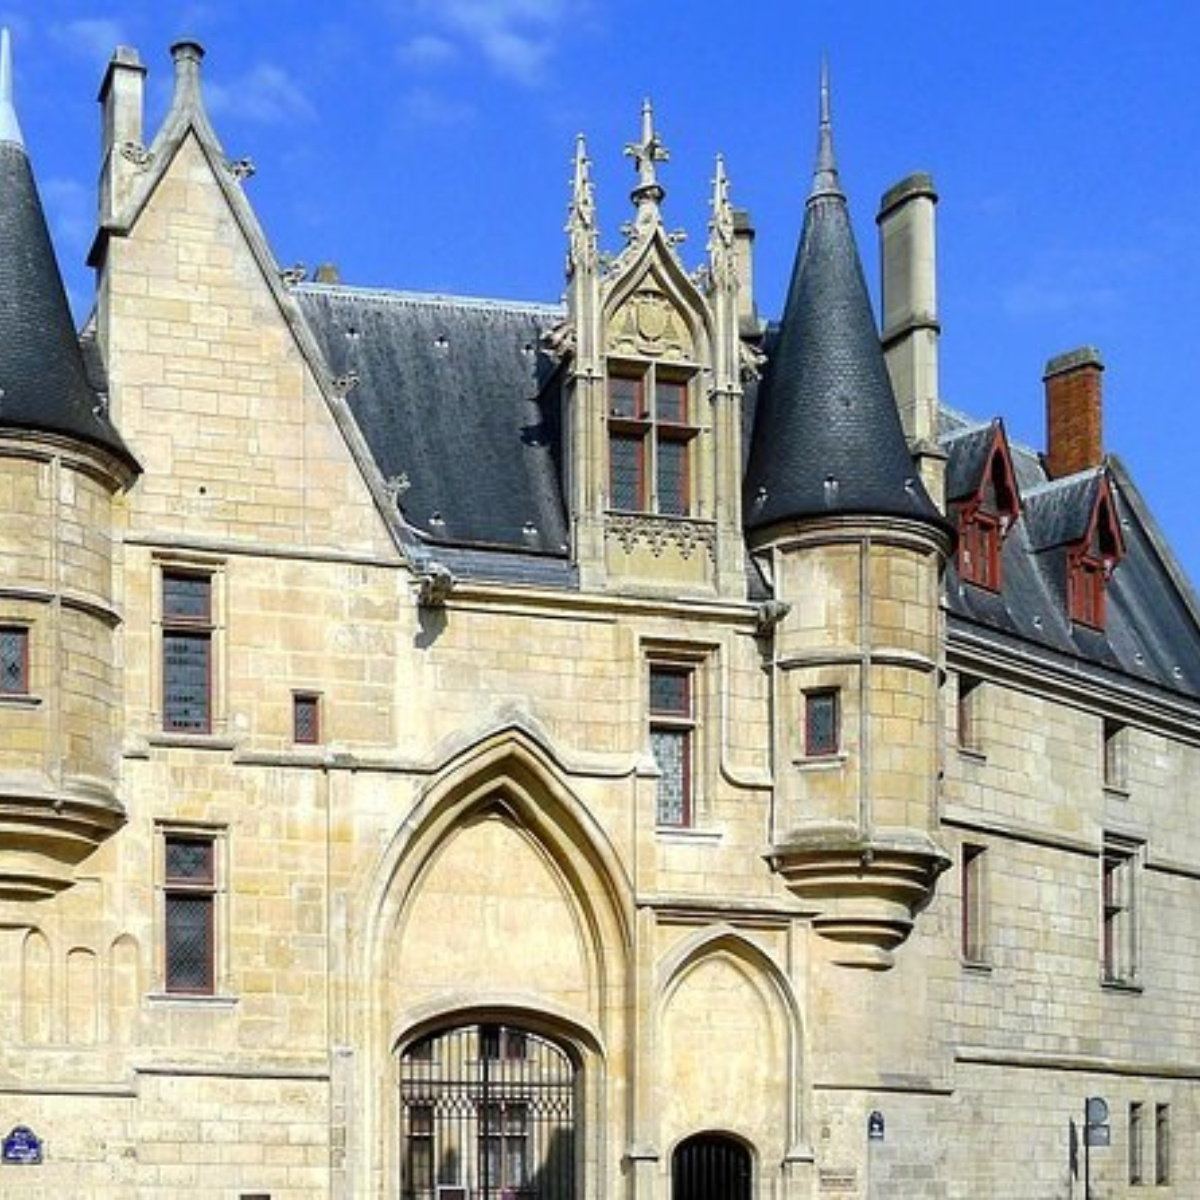 Gothic Paris - Castles & Cathedrals Images